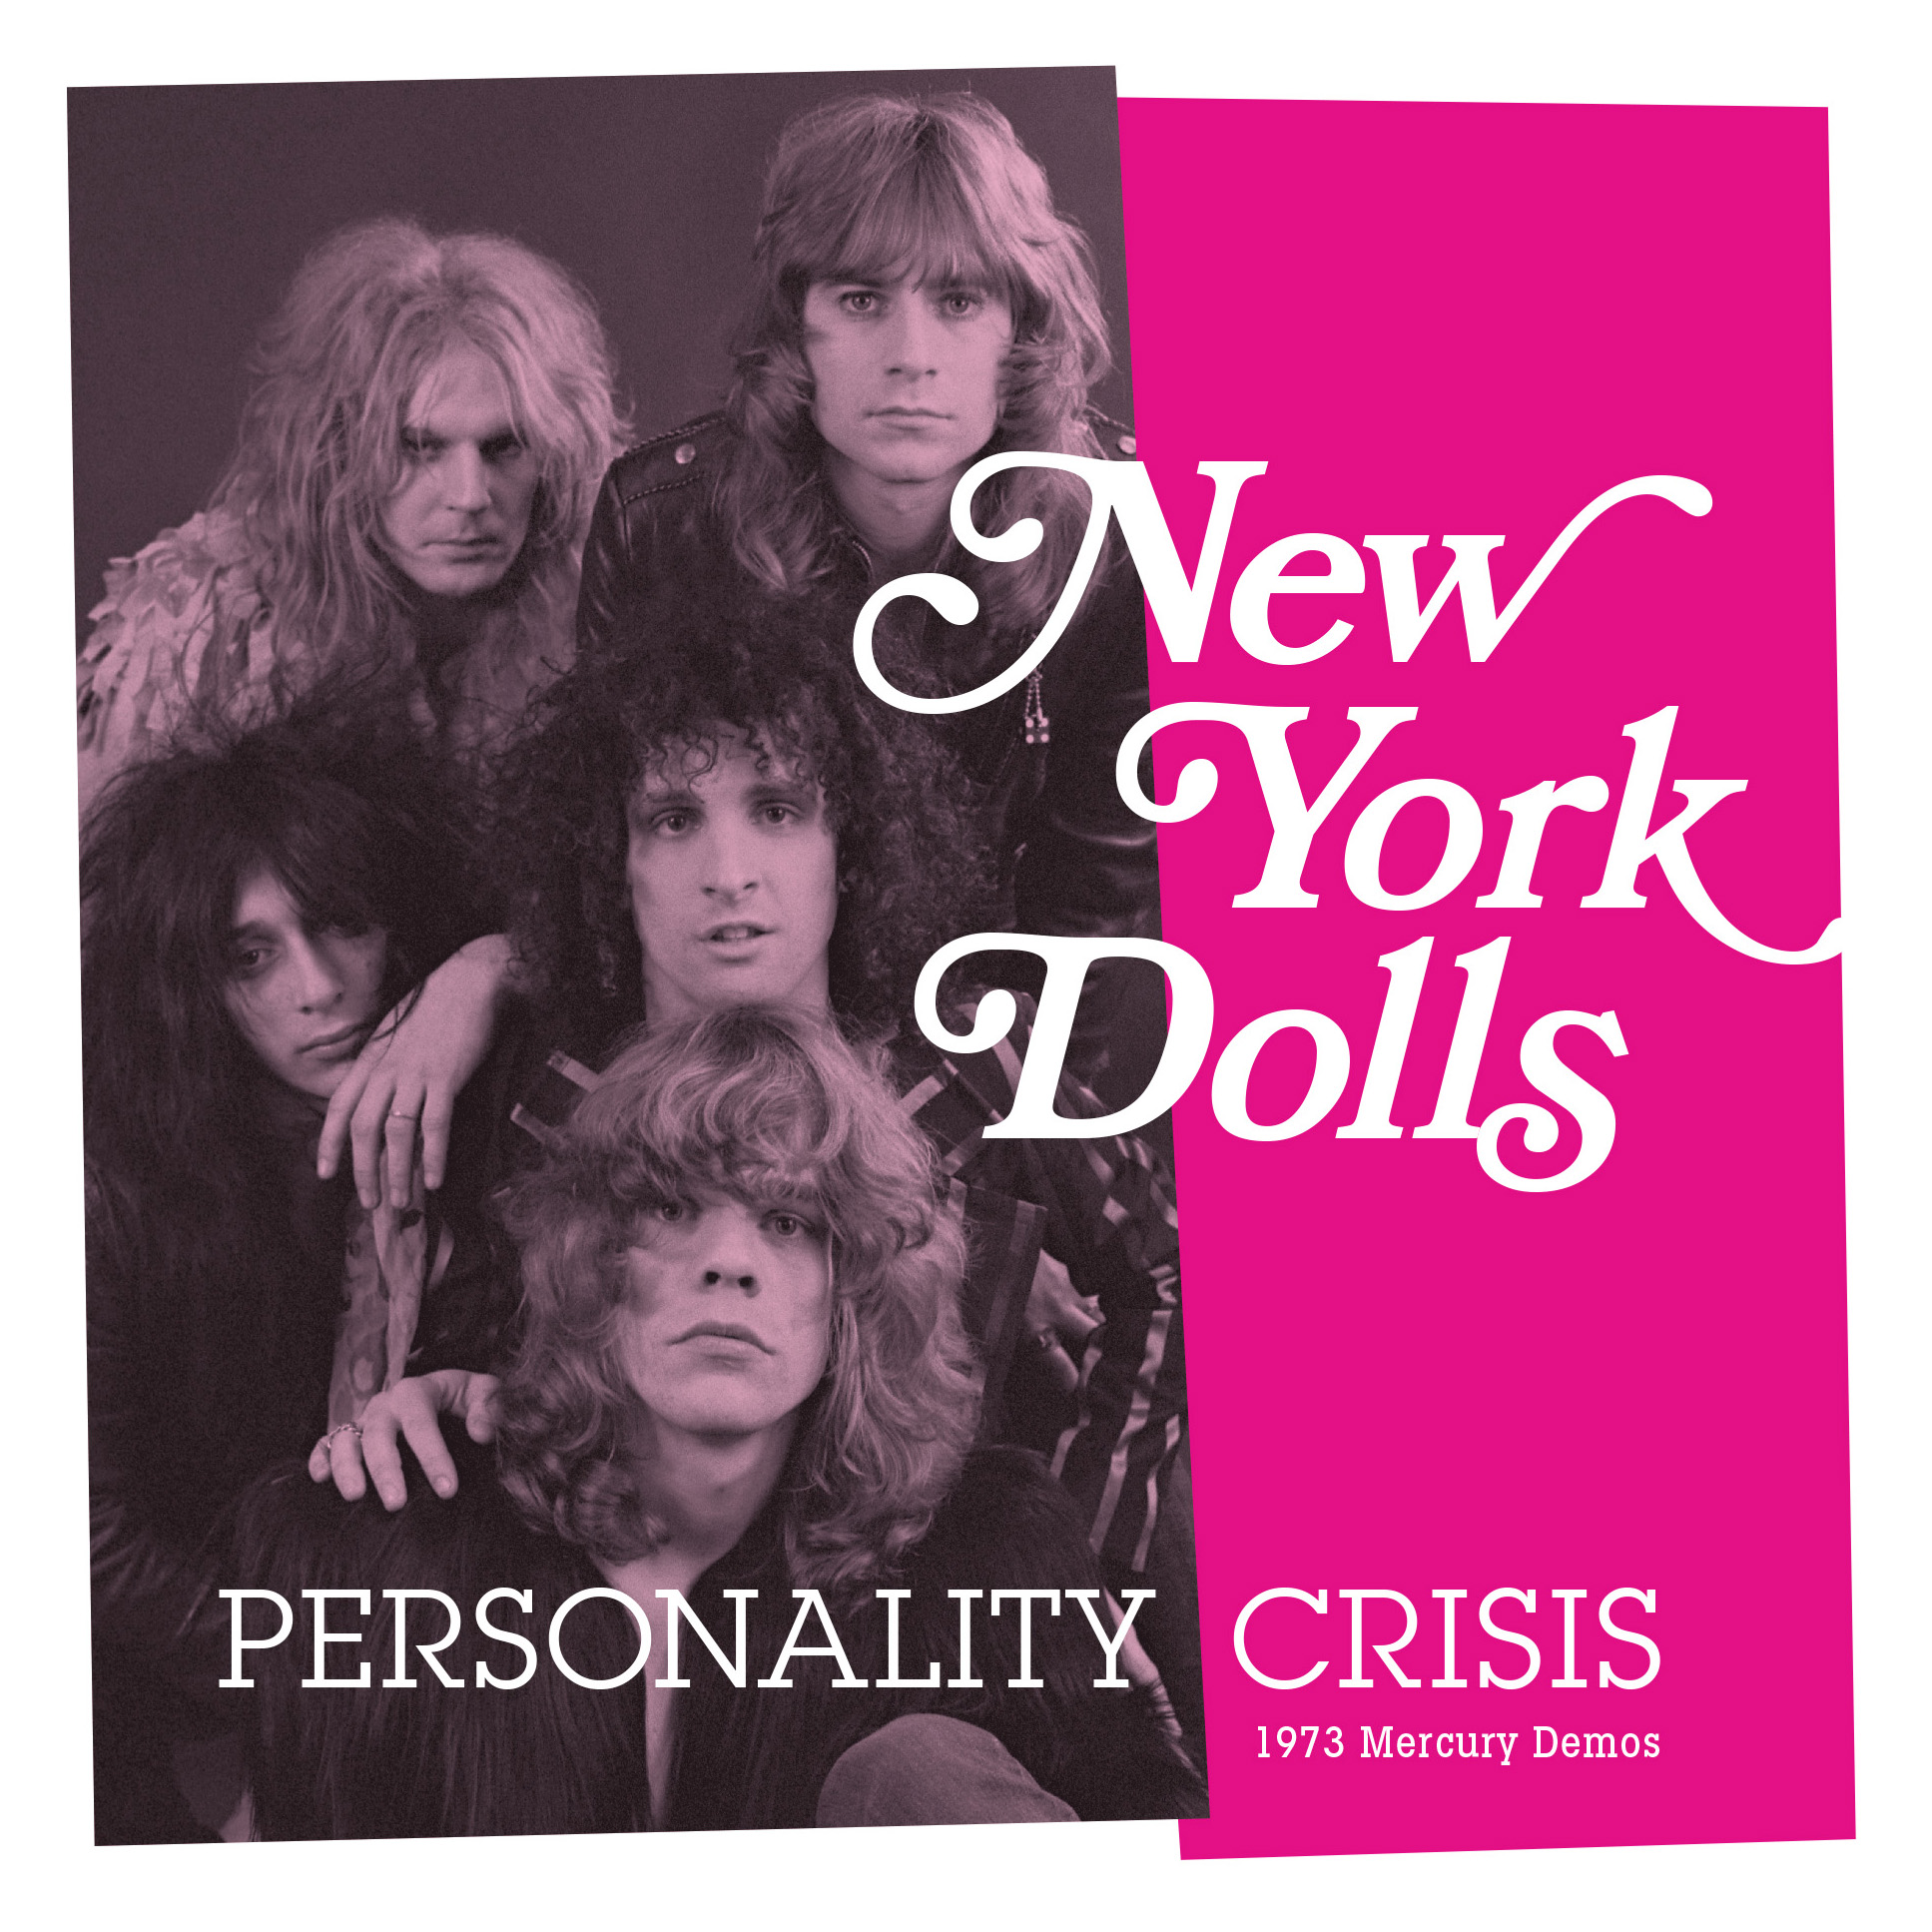 New York Dolls - Personality Crisis 45 sleeve